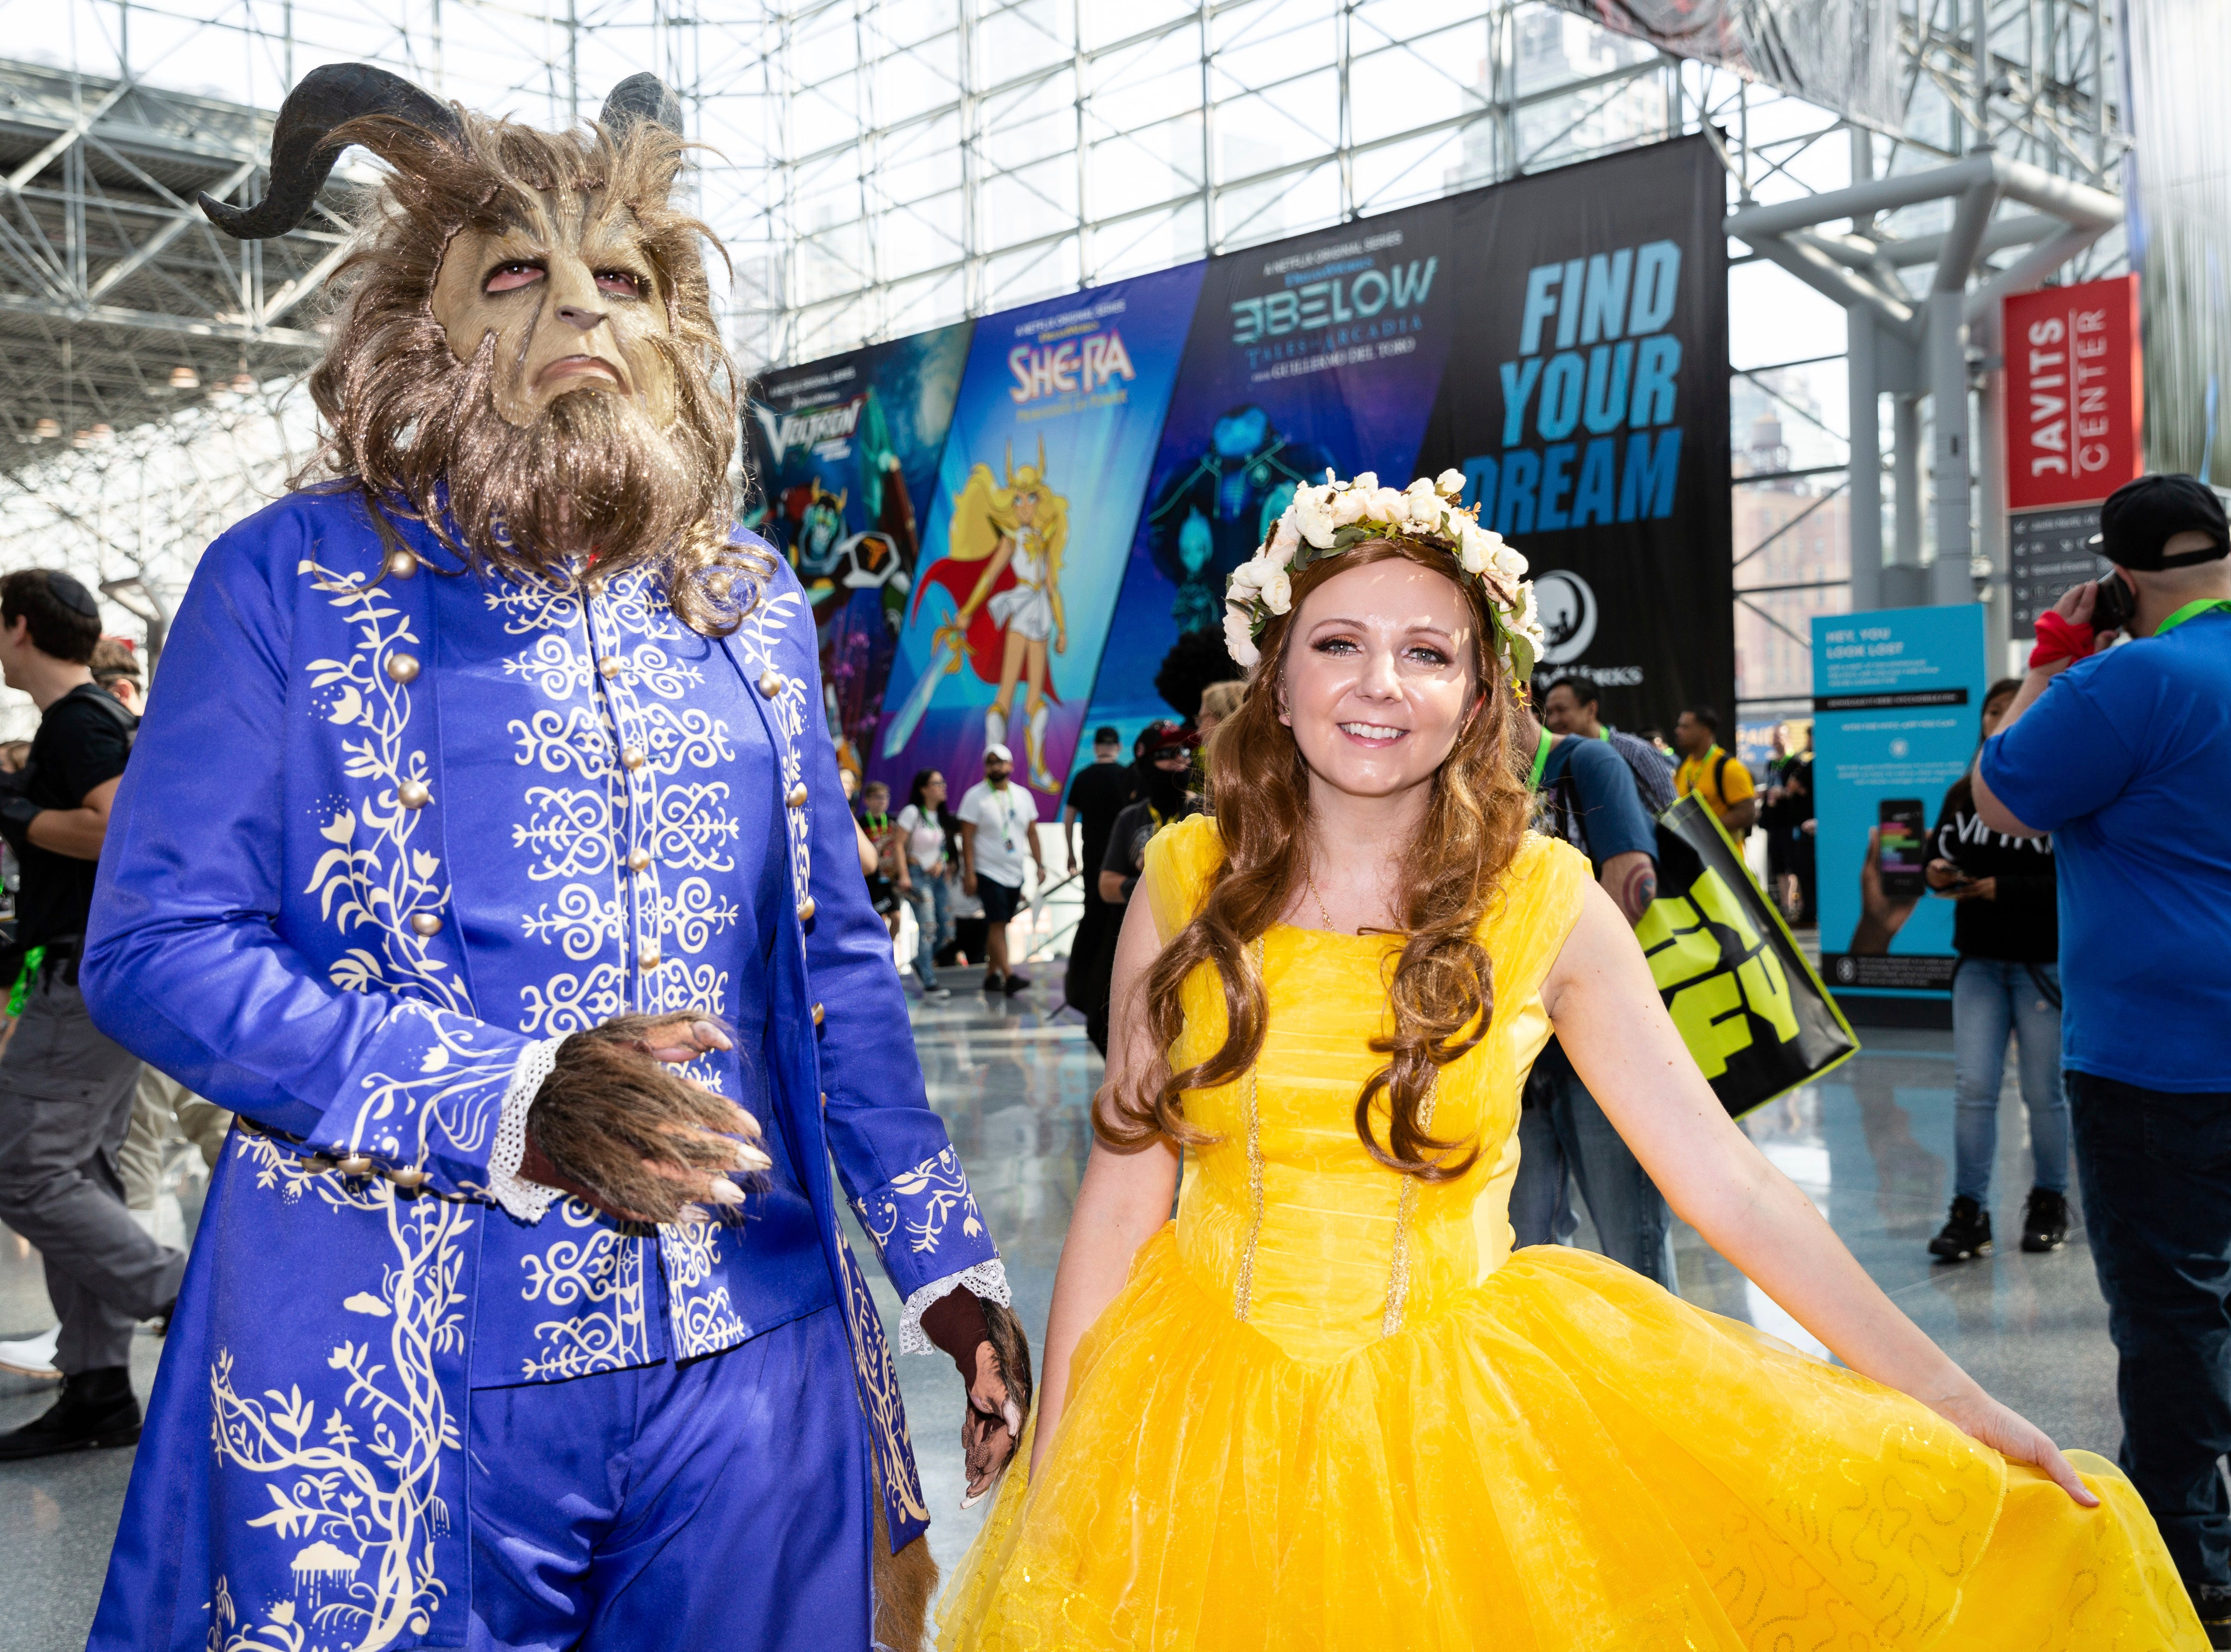 Fans dressed up as characters from Disney's Beauty and the Beast pose for a photo during the first day of New York Comic Con, Thursday, Oct. 4, 2018. (AP Photo/Steve Luciano)